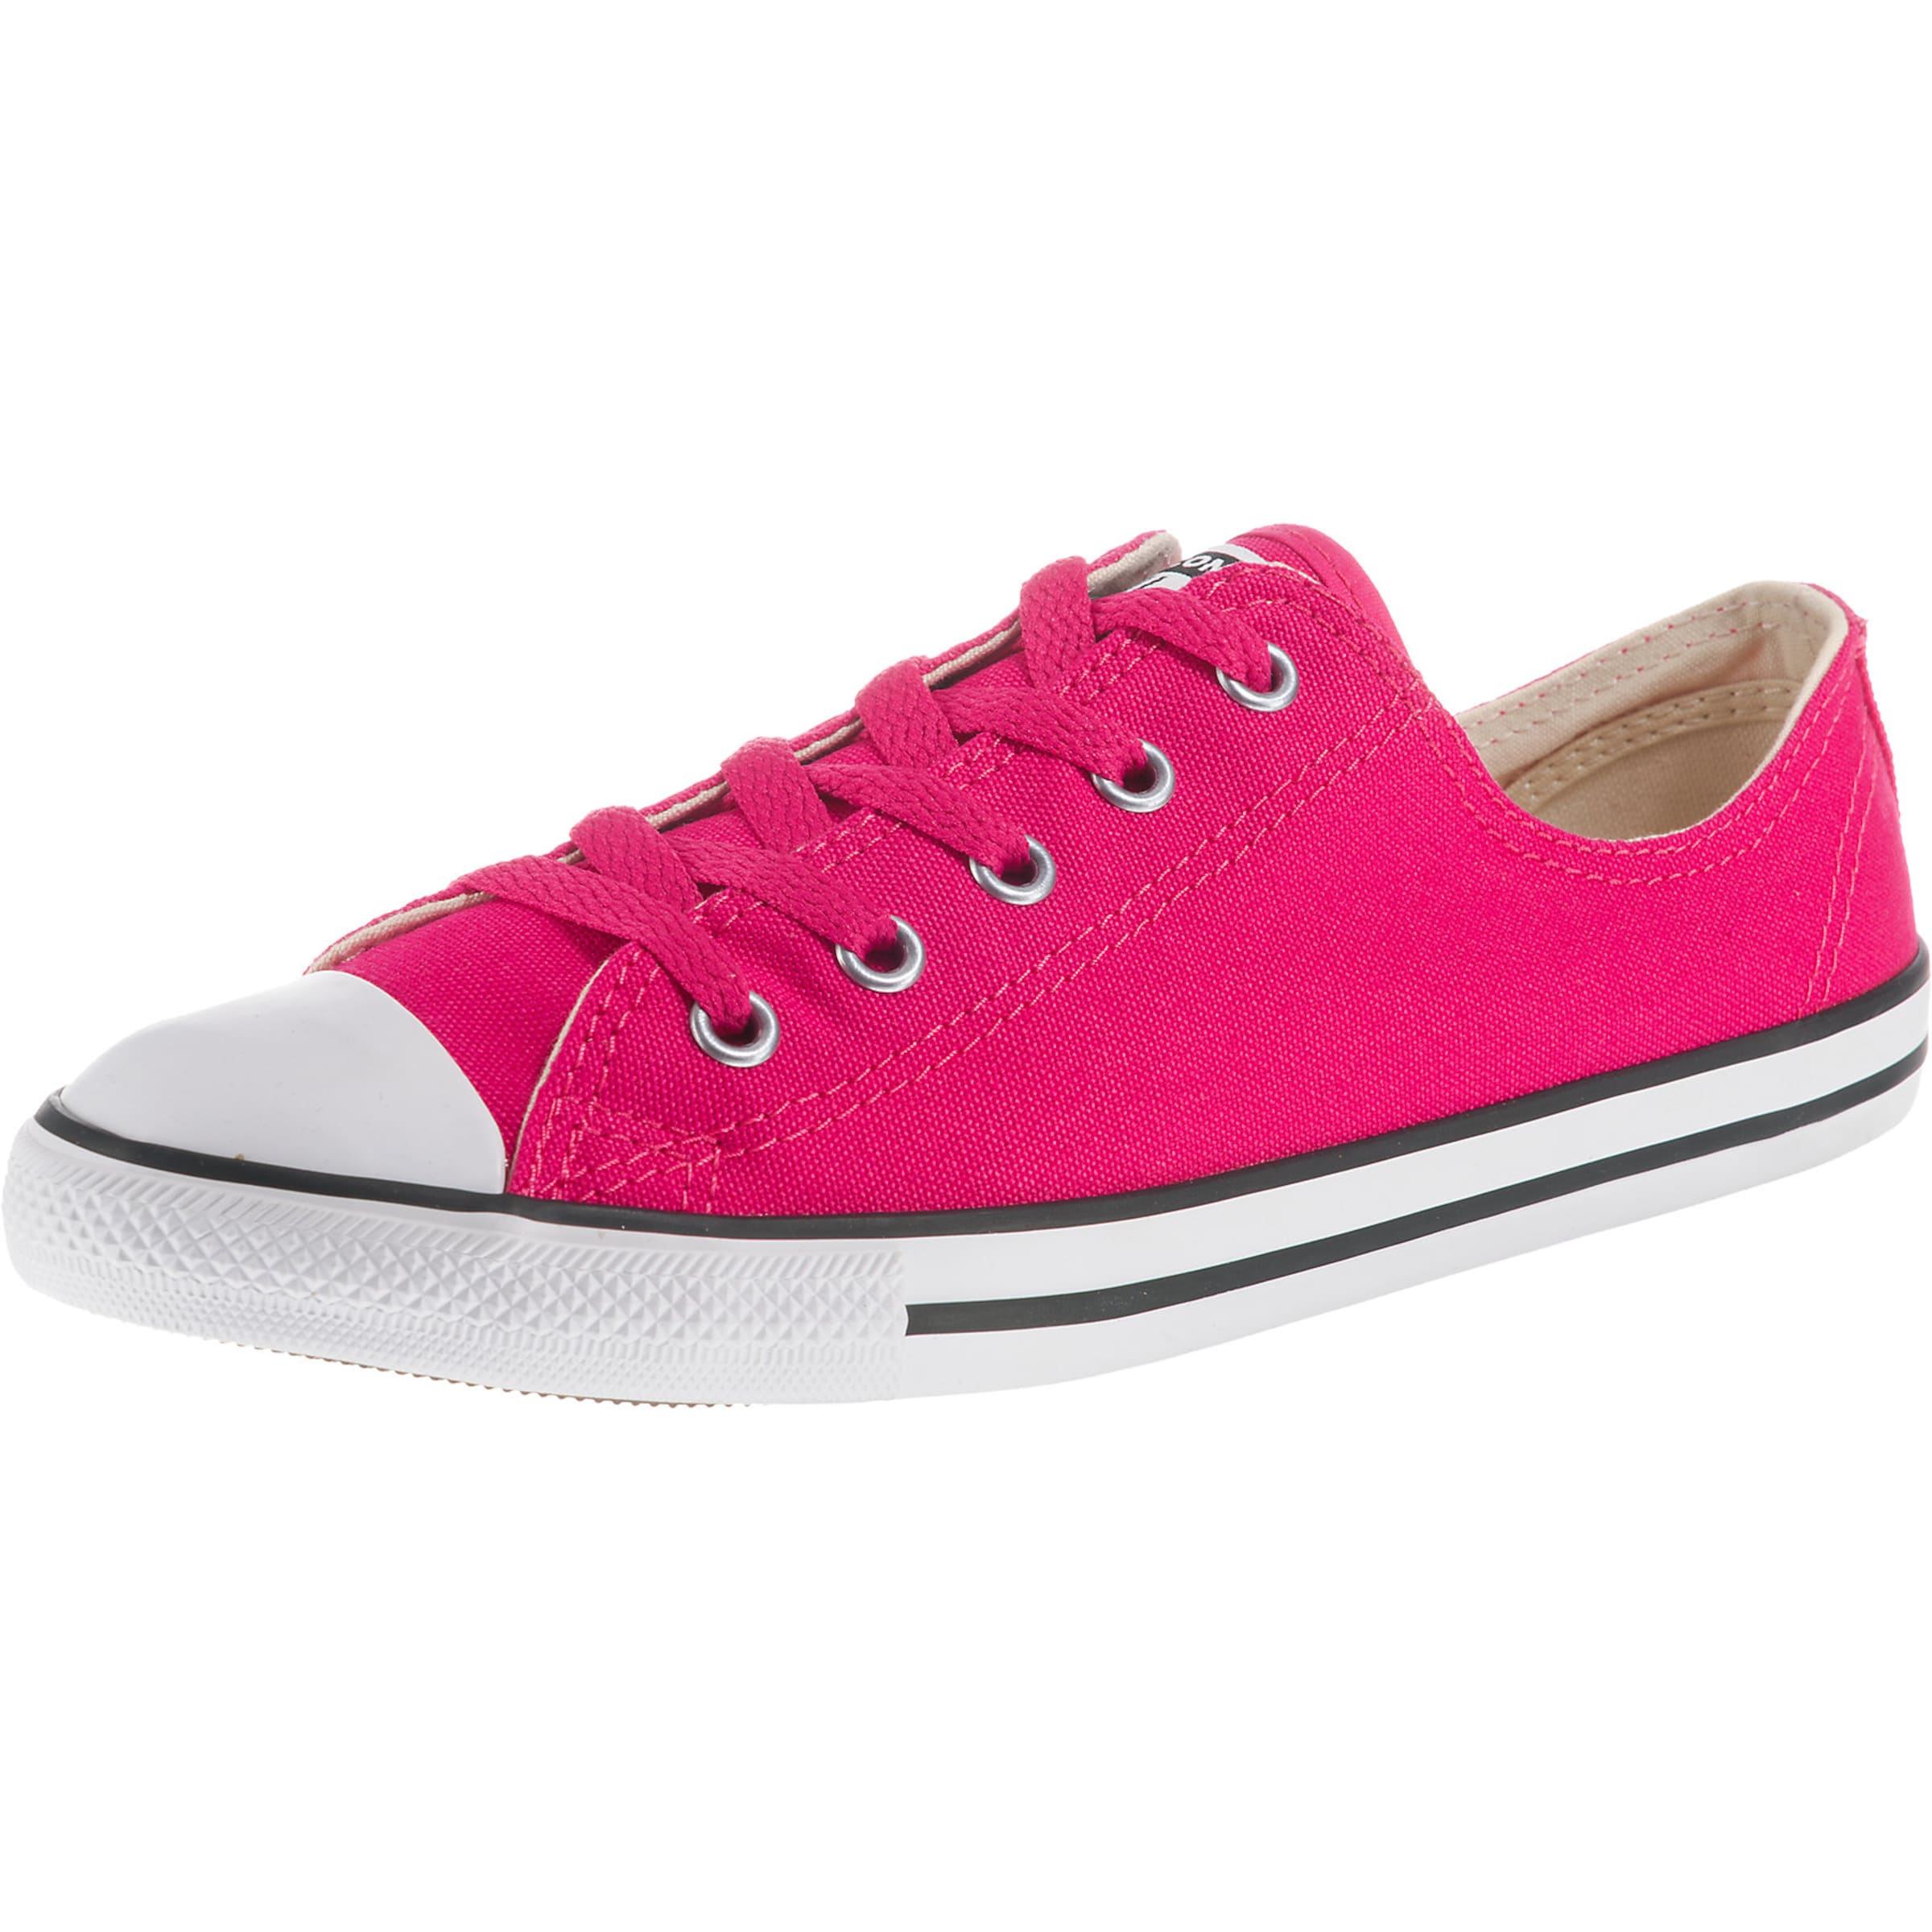 Dainty 'chuck Star Pink Ox' Sneakers In All Taylor Converse QxtCshdr